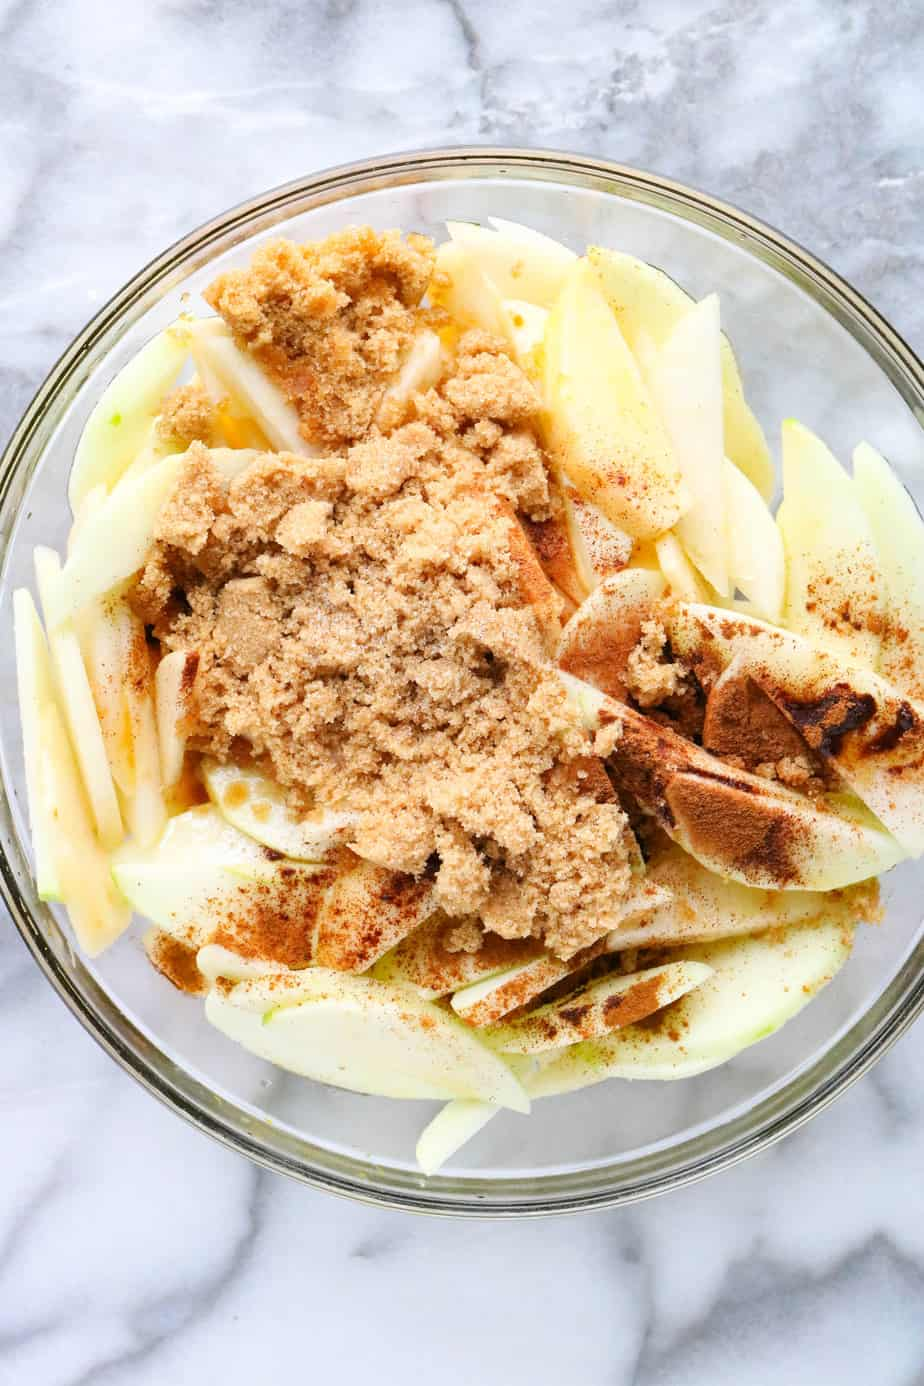 Apples and pear slices in a bowl topped with brown sugar and cinnamon